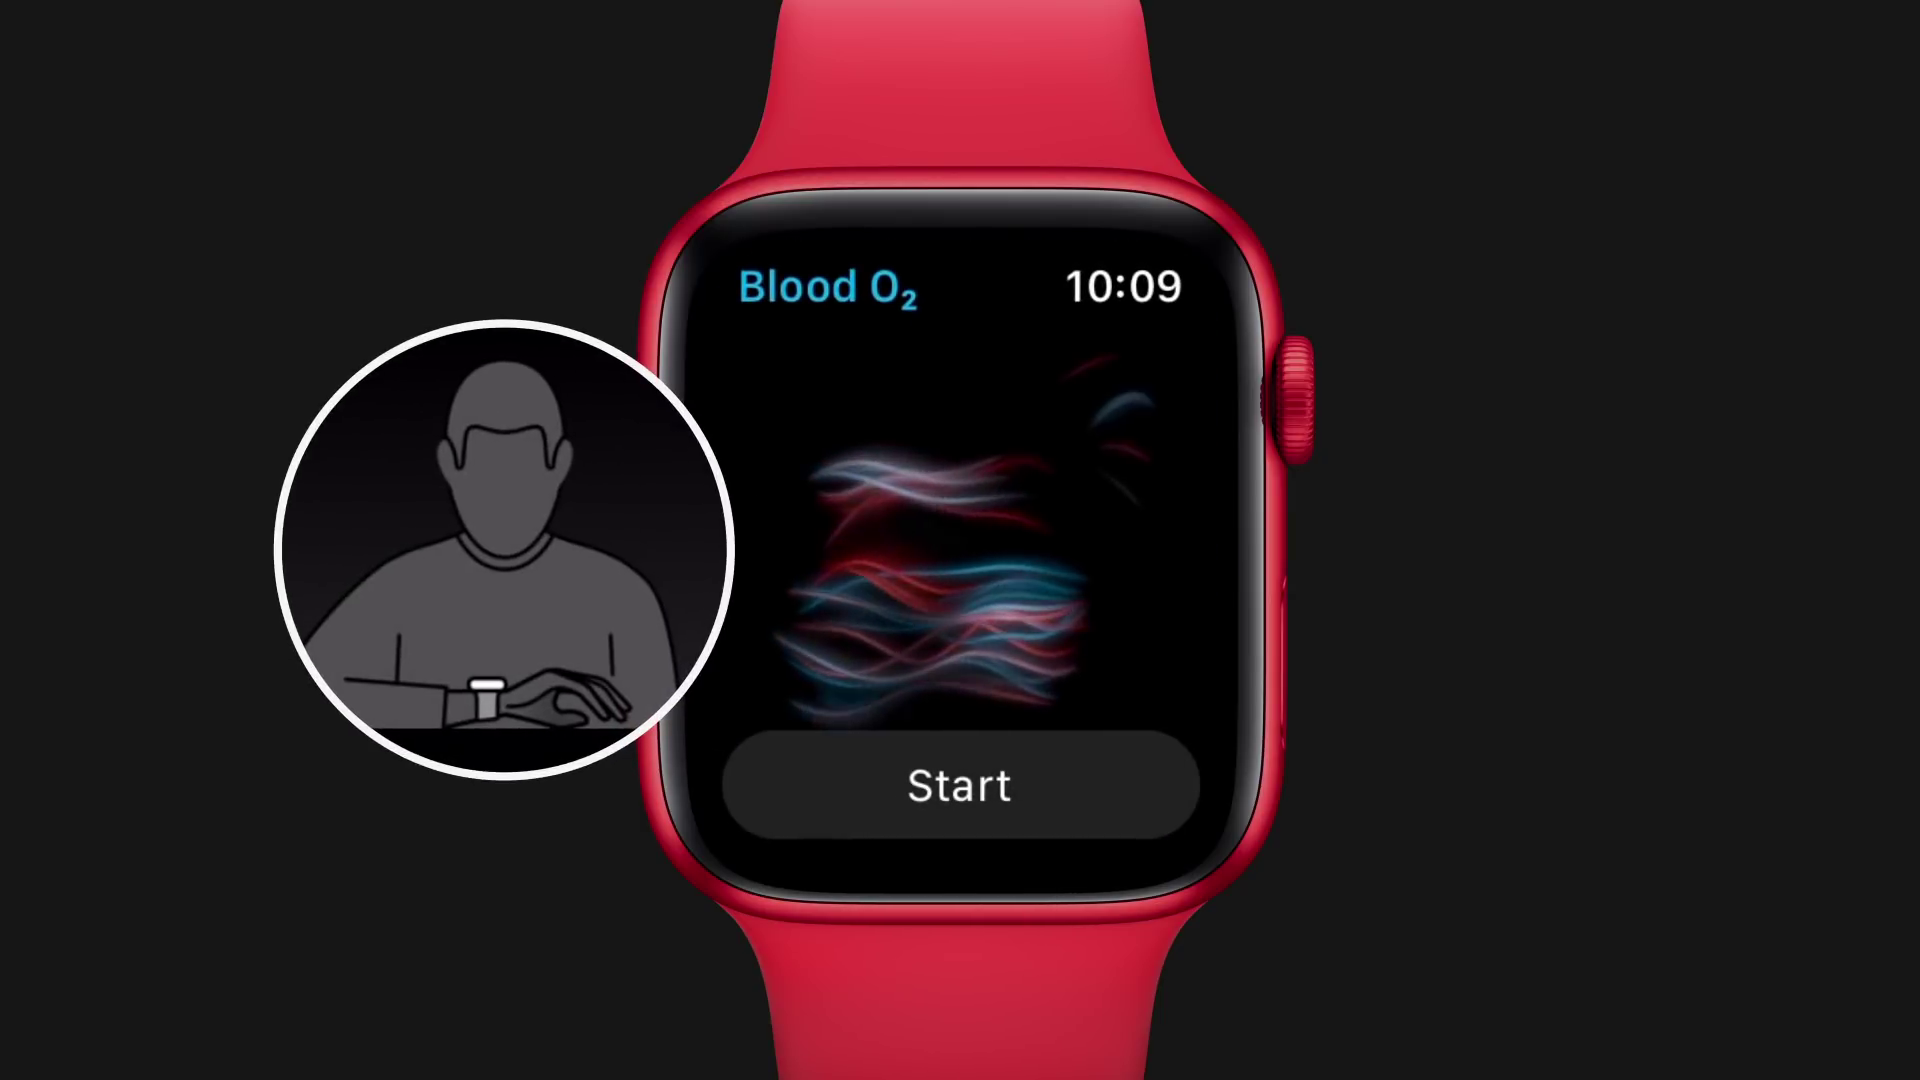 How to use your Latest Apple Watch & the Blood Oxygen app?